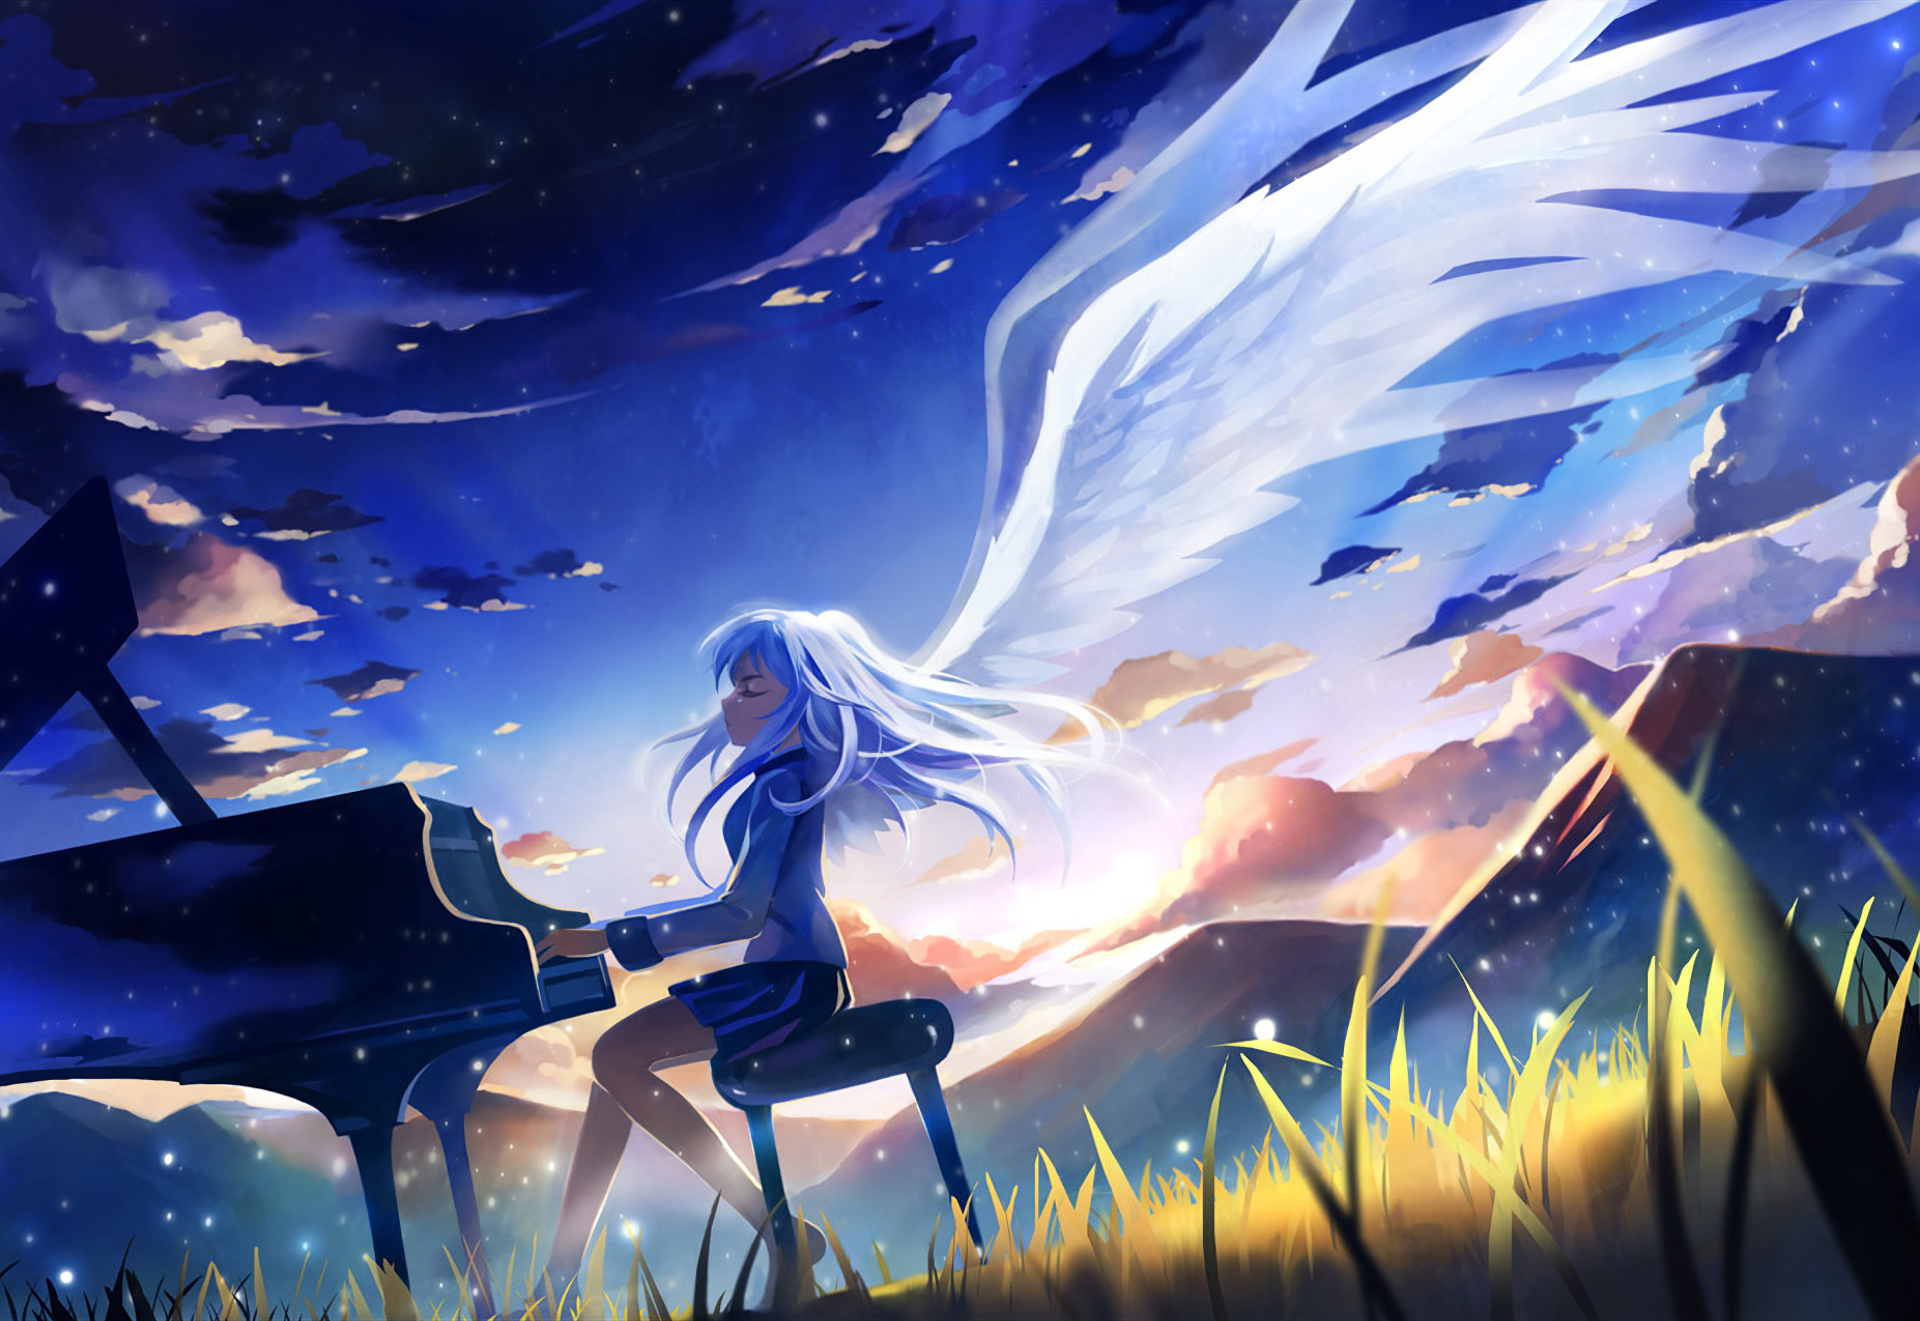 742 Angel Beats Hd Wallpapers Background Images Wallpaper Abyss